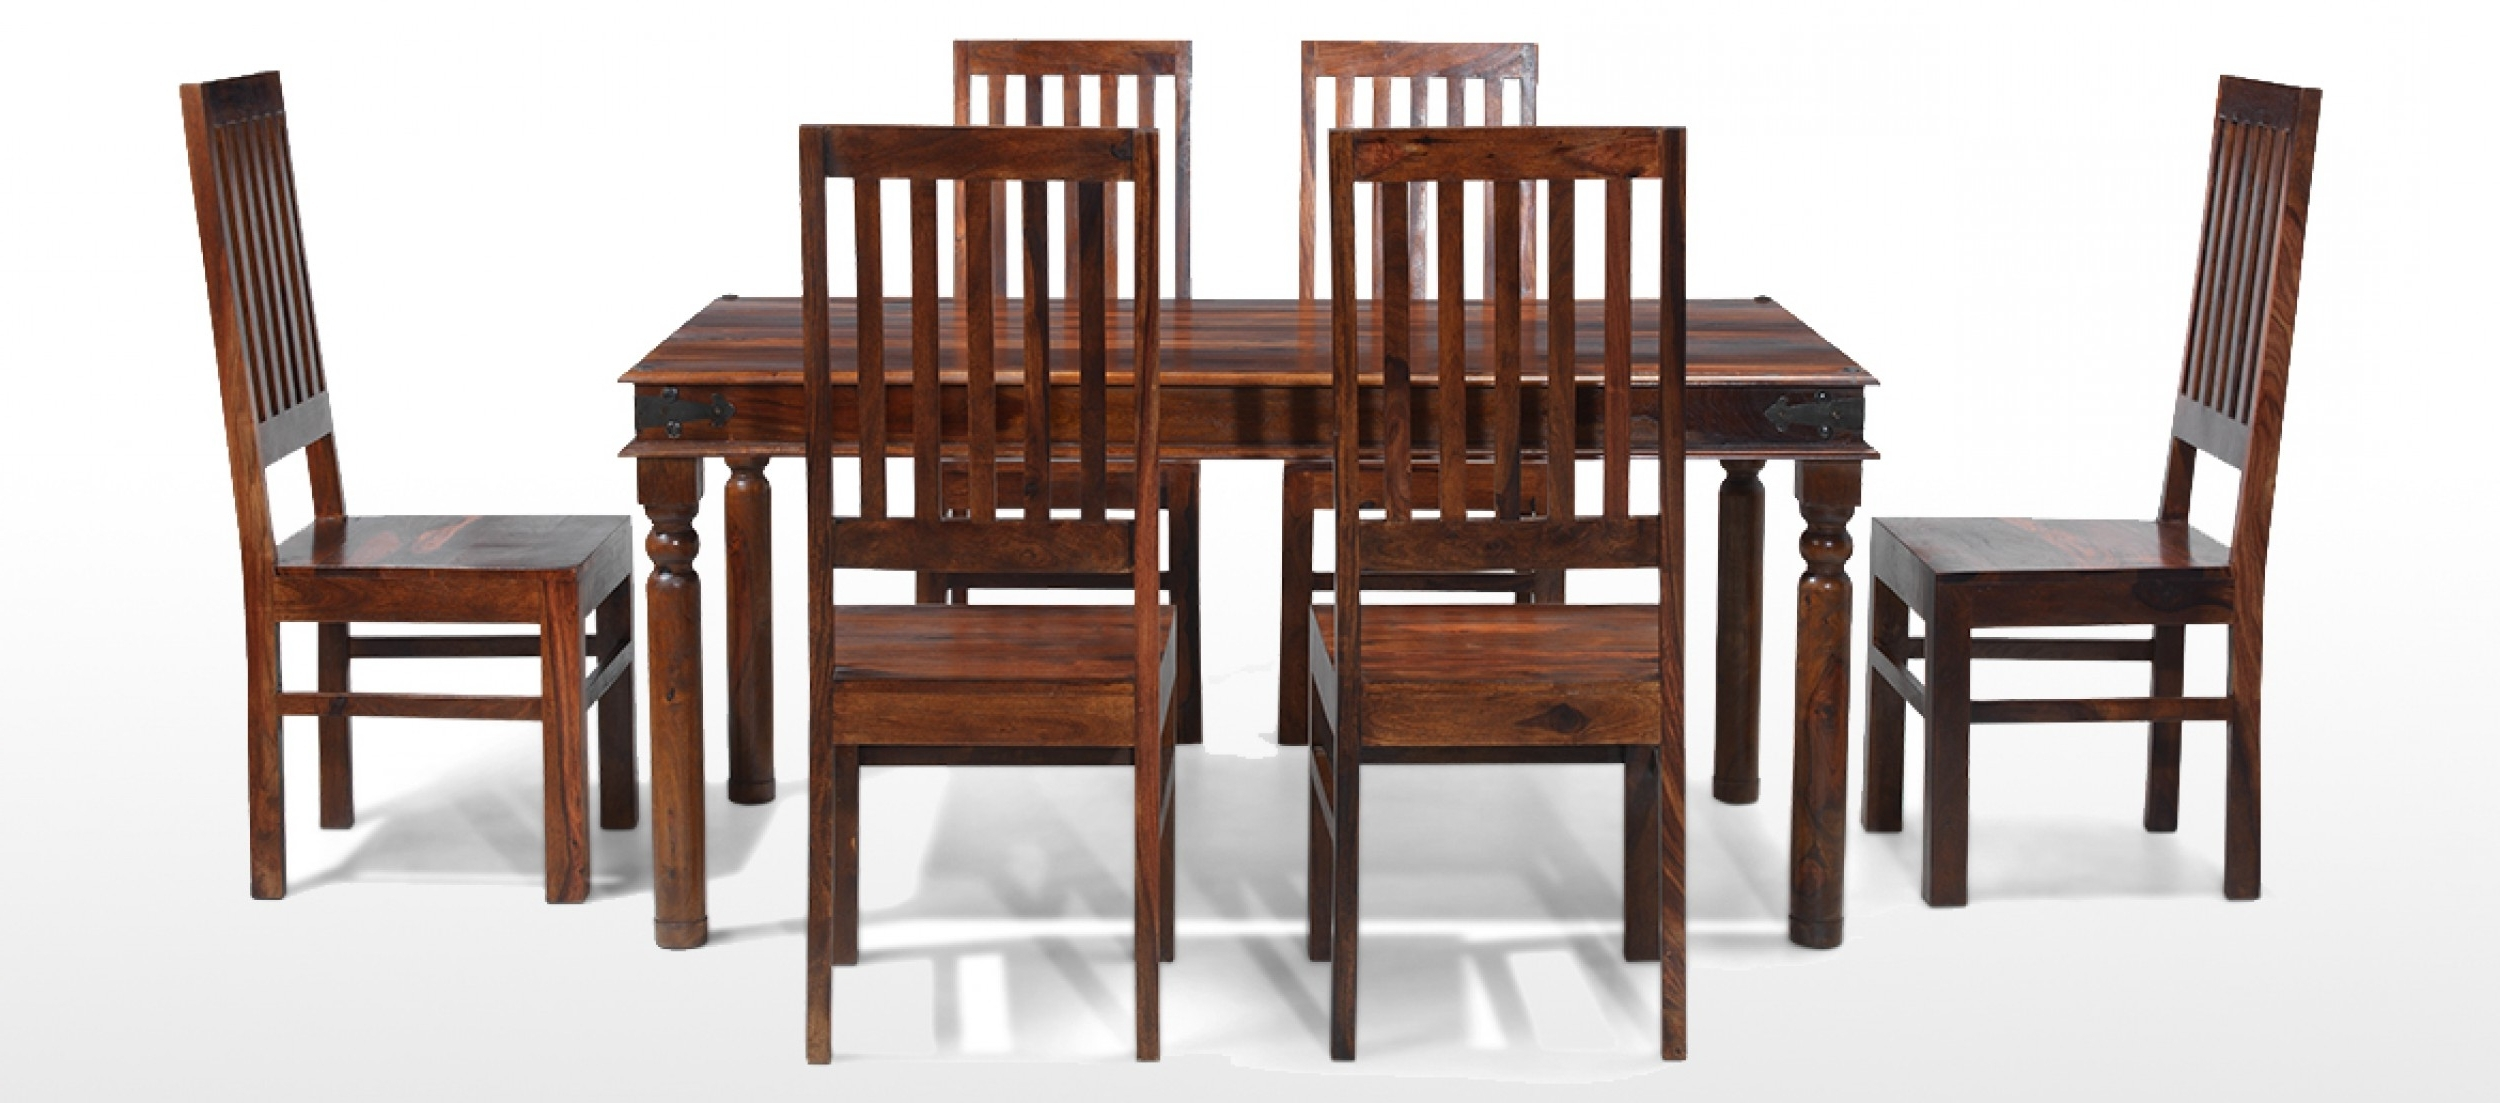 Quercus Living For Dark Wood Dining Tables And Chairs (View 22 of 25)